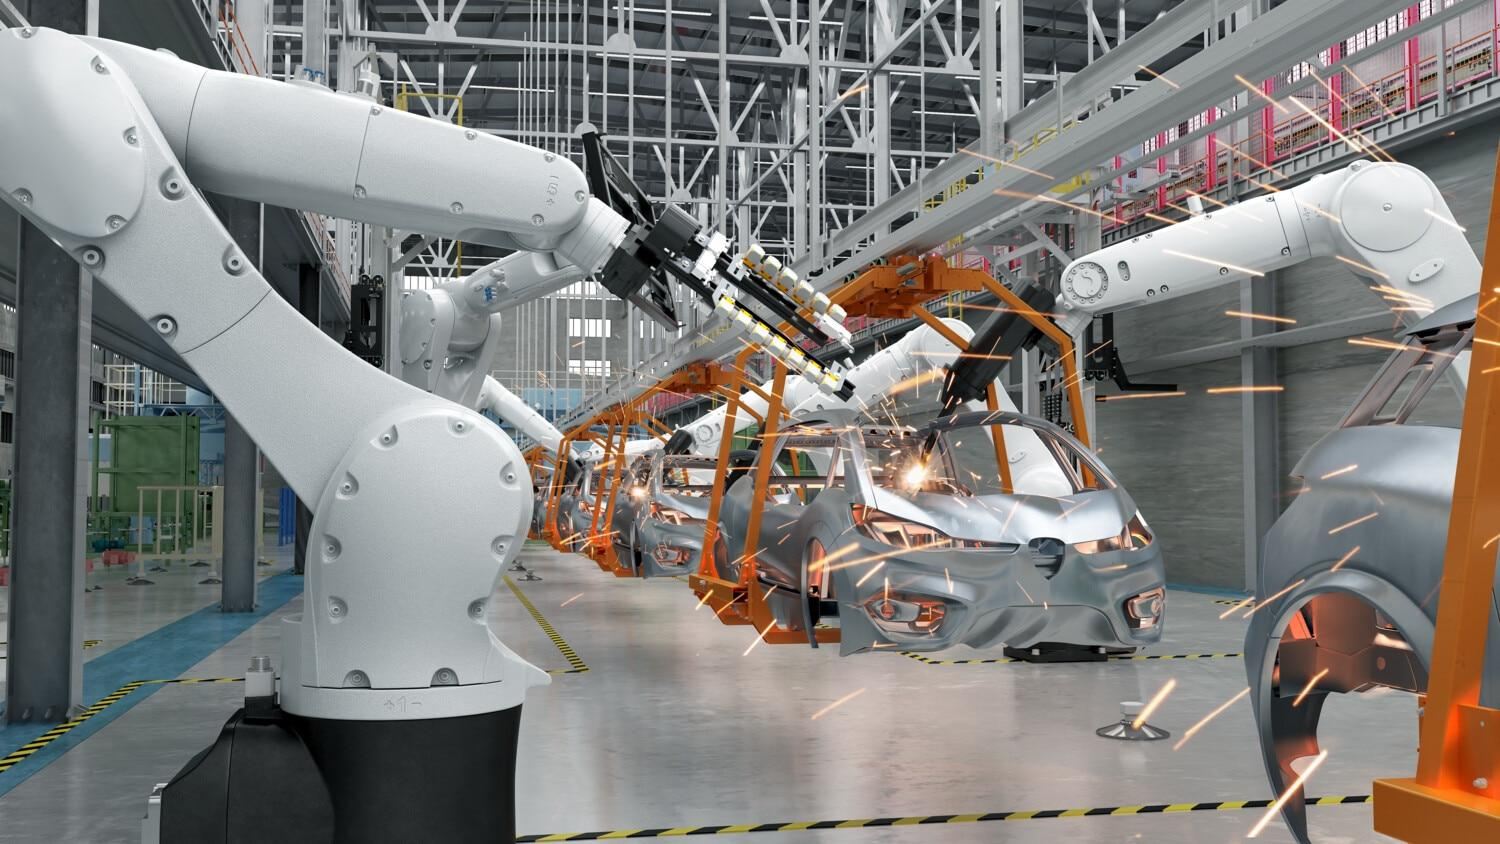 Industry robots automation automotive manufacturing